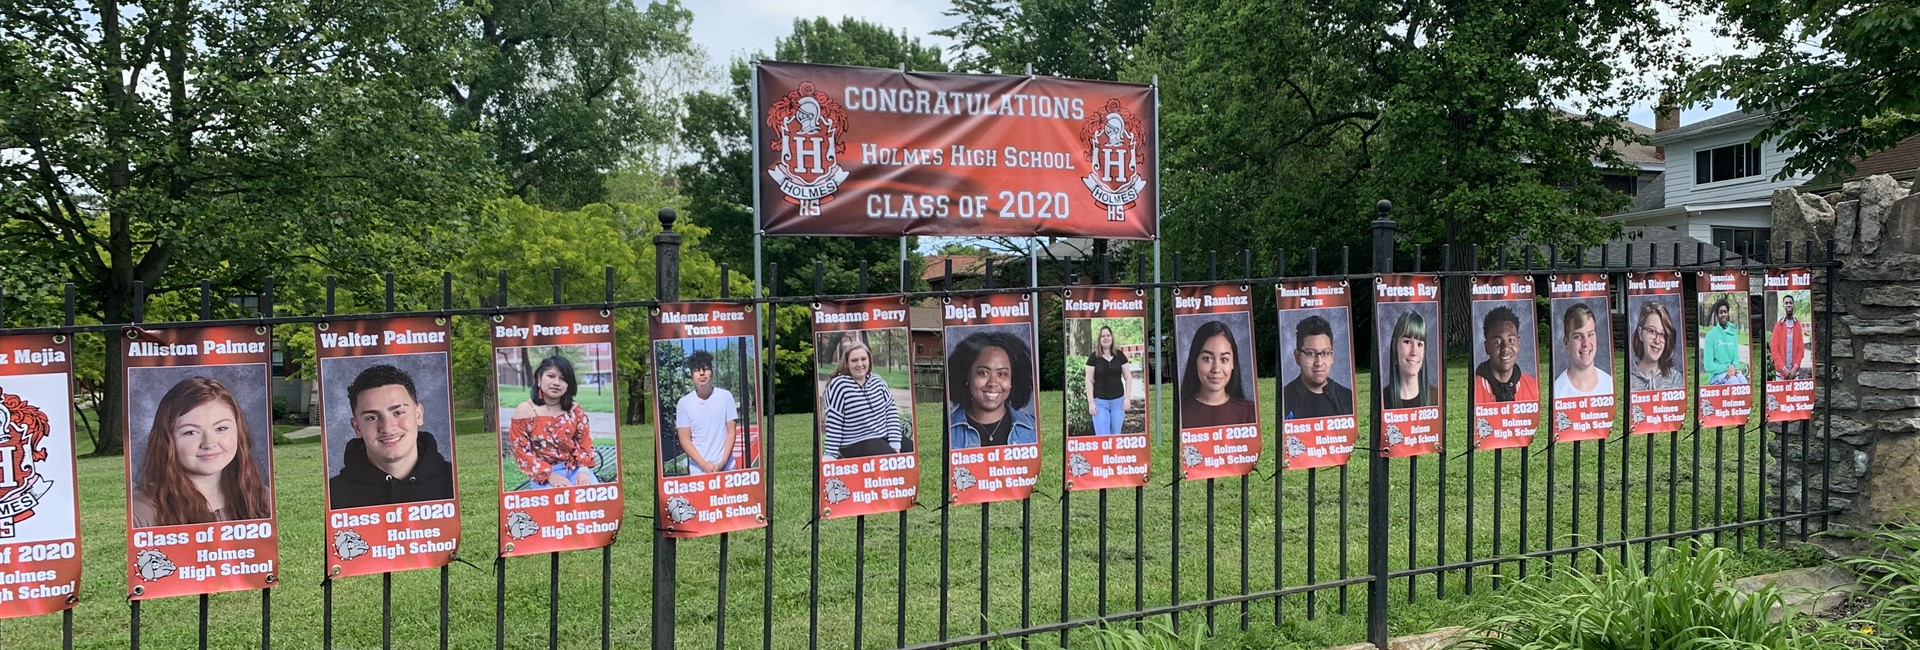 Banners Honor Class of 2020